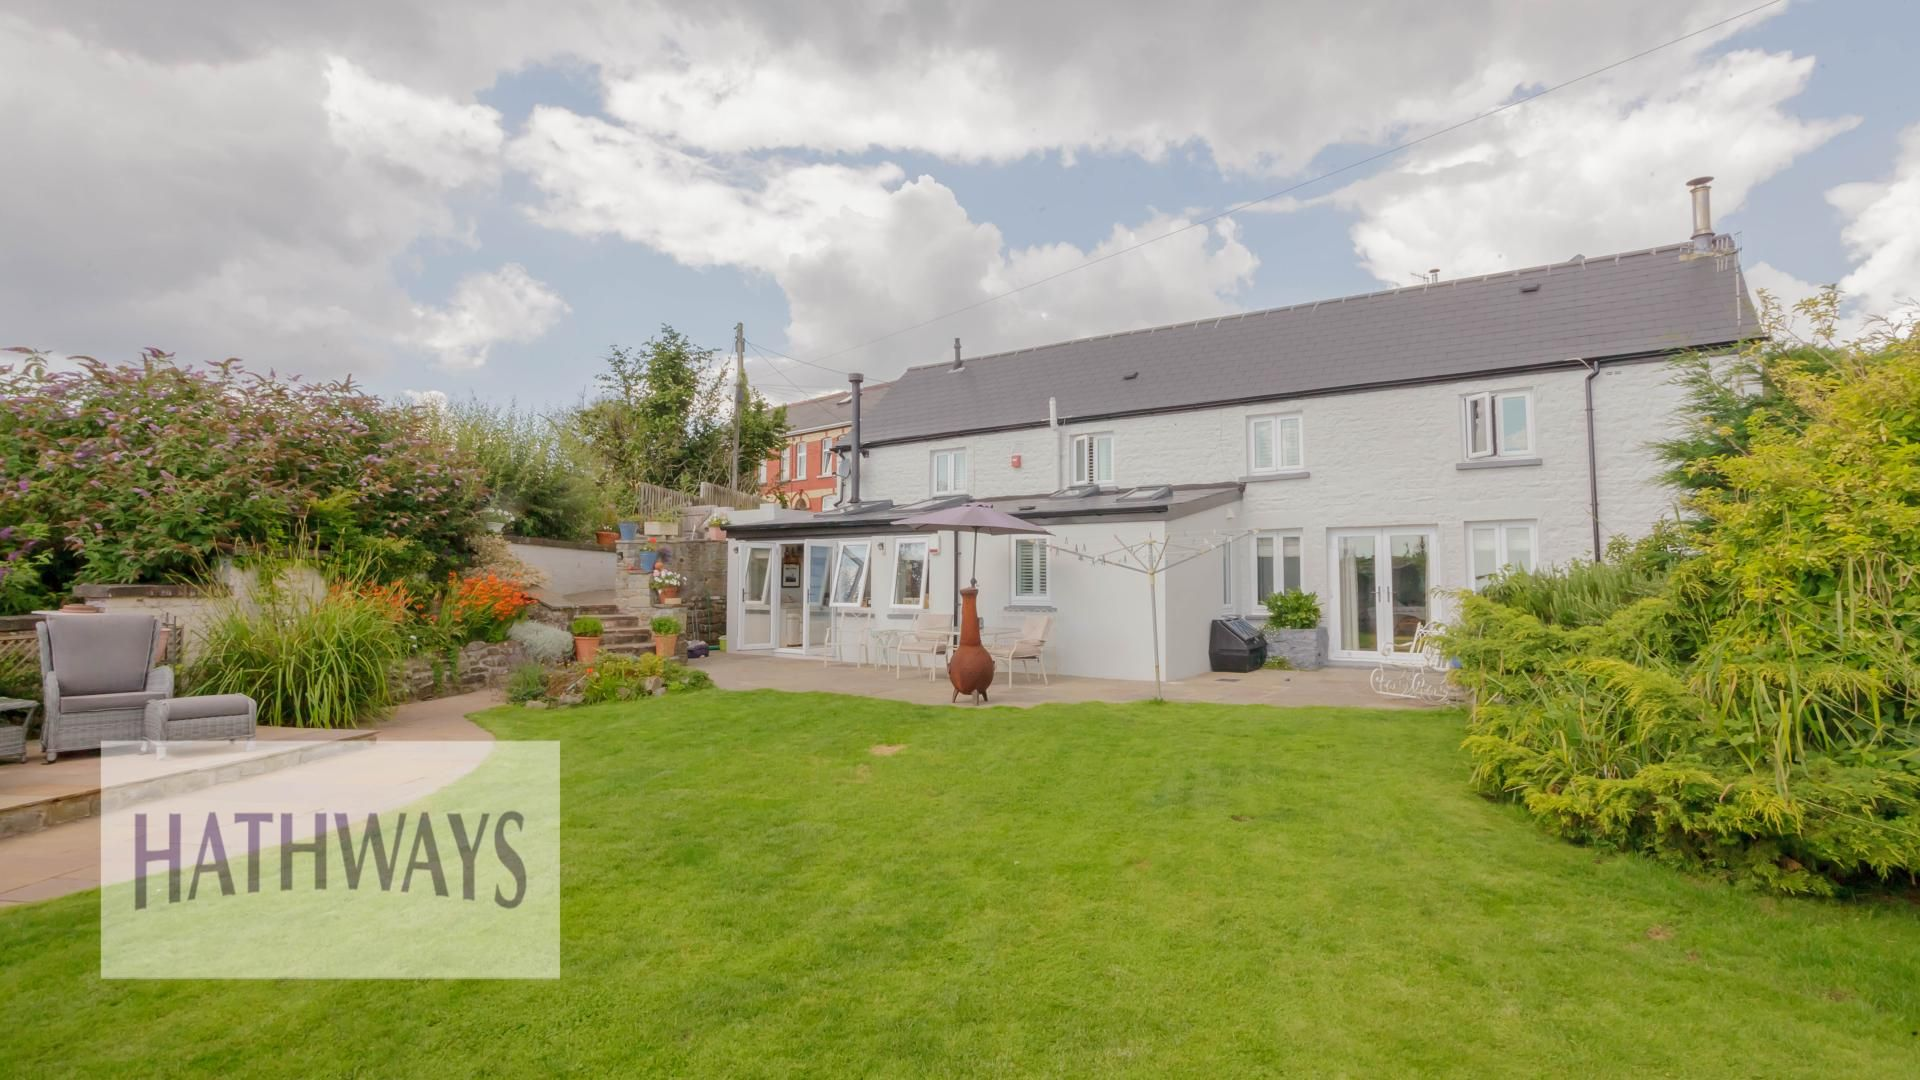 3 bed house for sale in Tranch Road, NP4